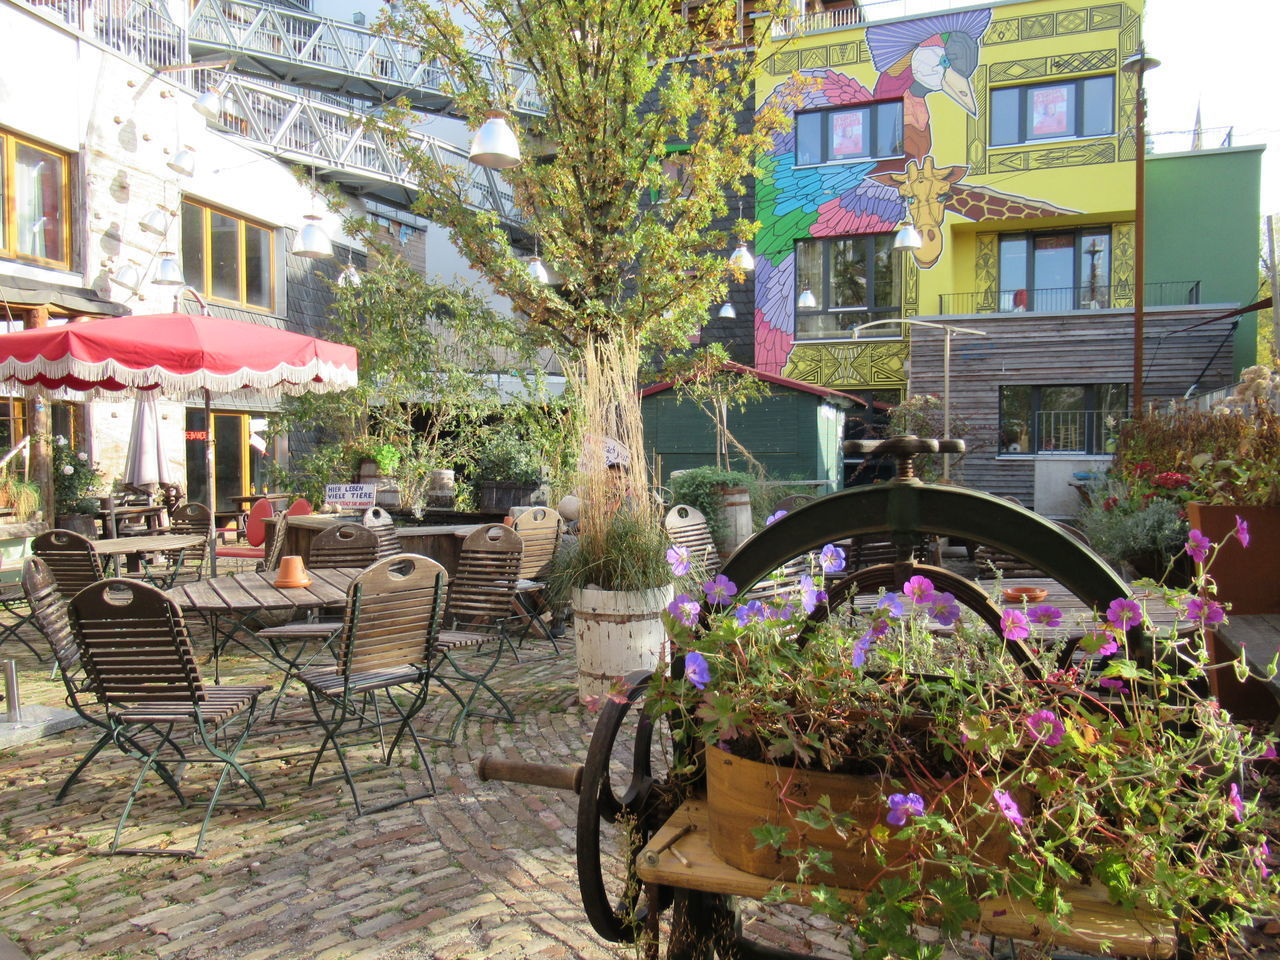 CHAIRS AND TABLES AT SIDEWALK CAFE BY BUILDINGS